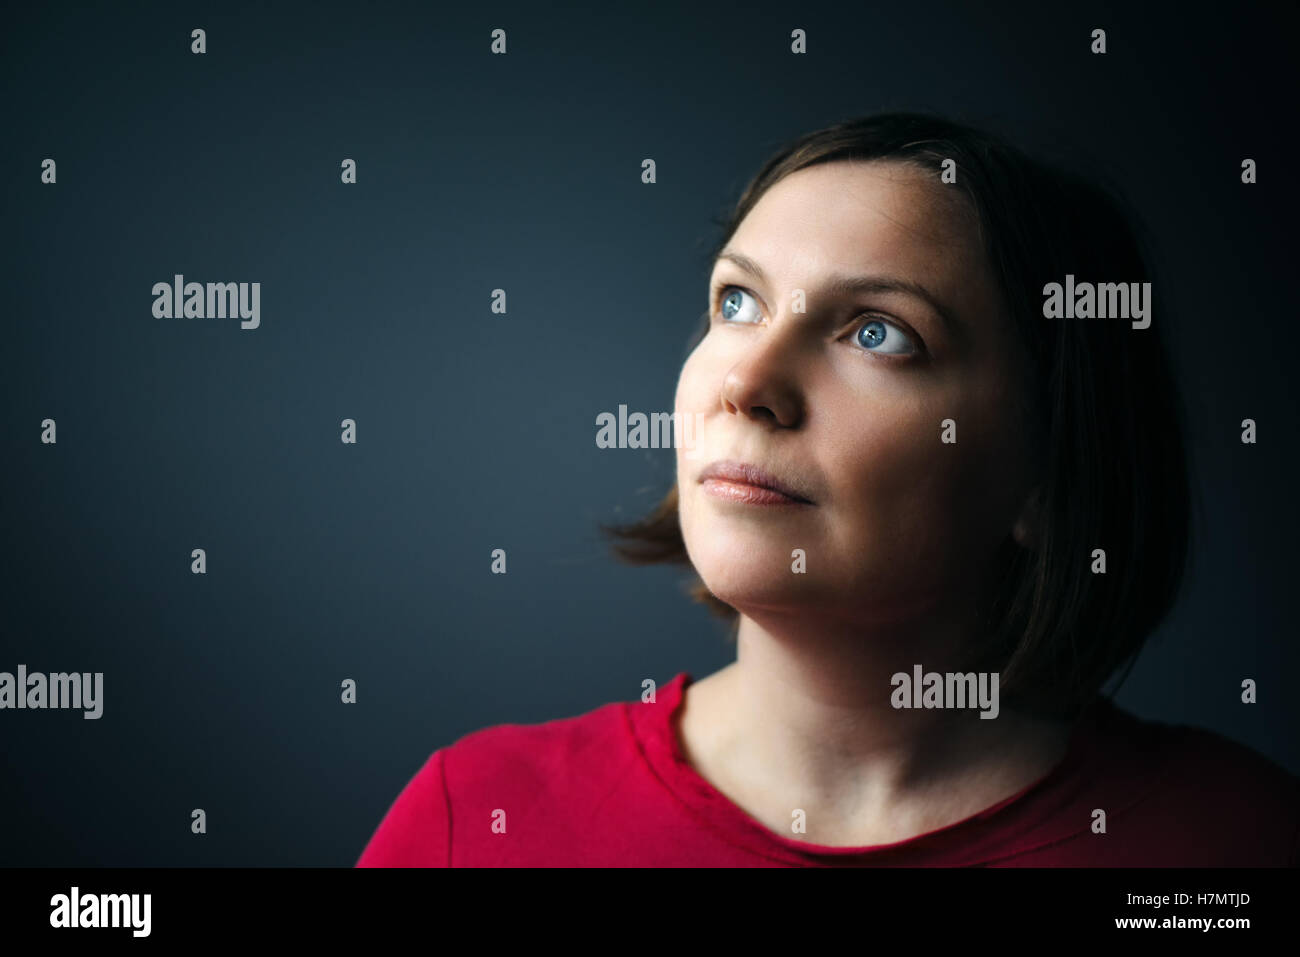 Hope and expectations, beauty portrait of young adult woman looking up to soft light coming from above - Stock Image